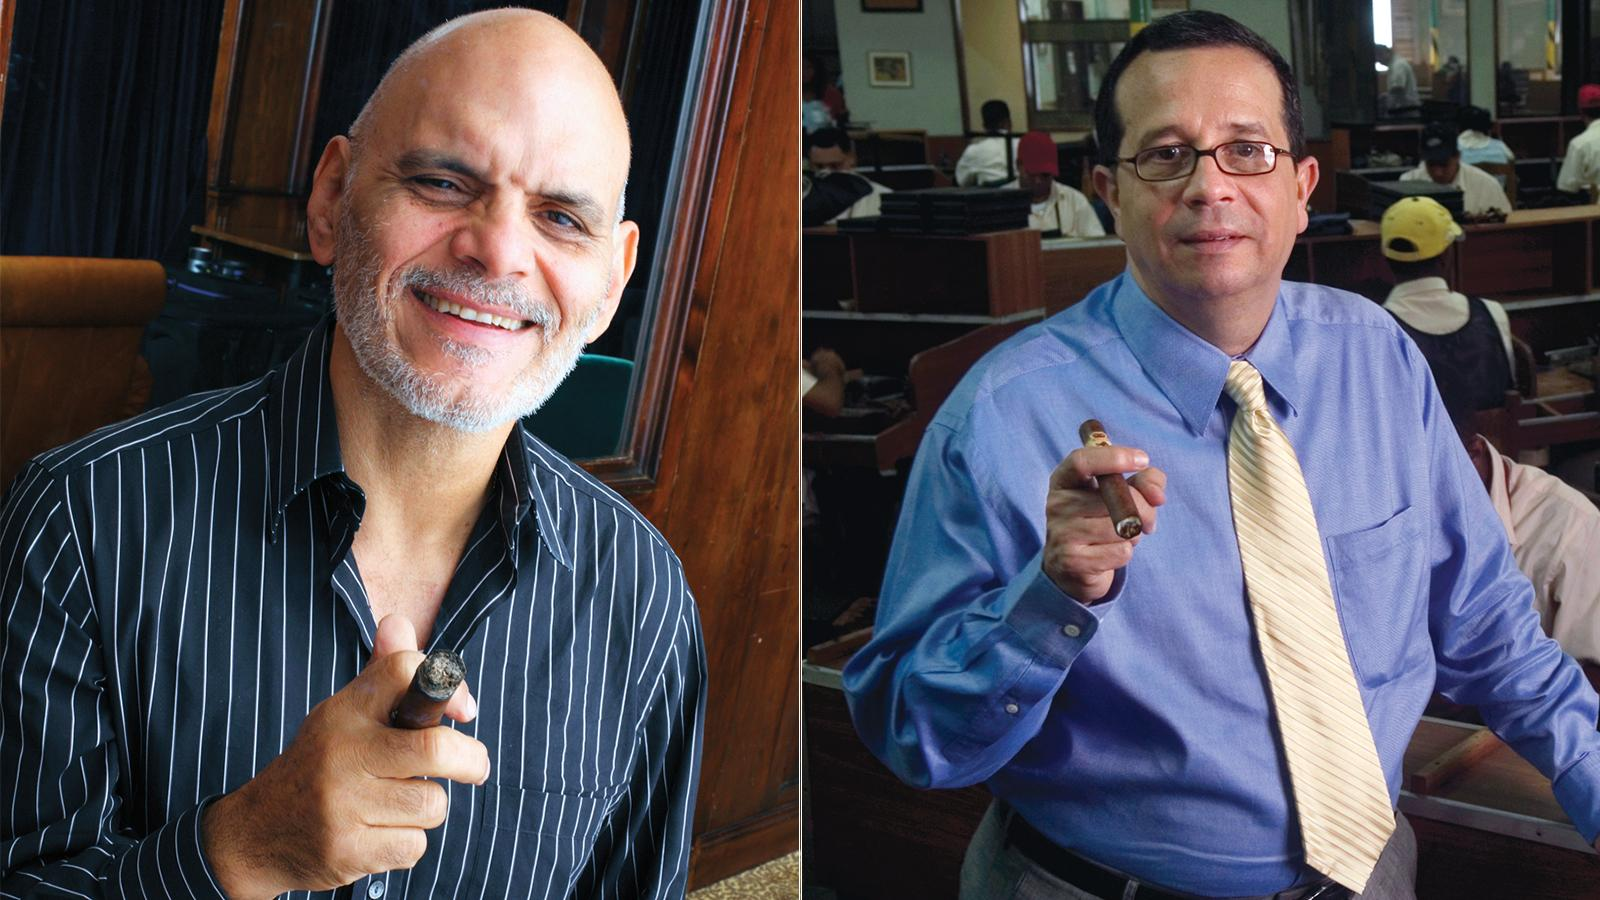 EXCLUSIVE: José Blanco Joins EPC Cigar Co.